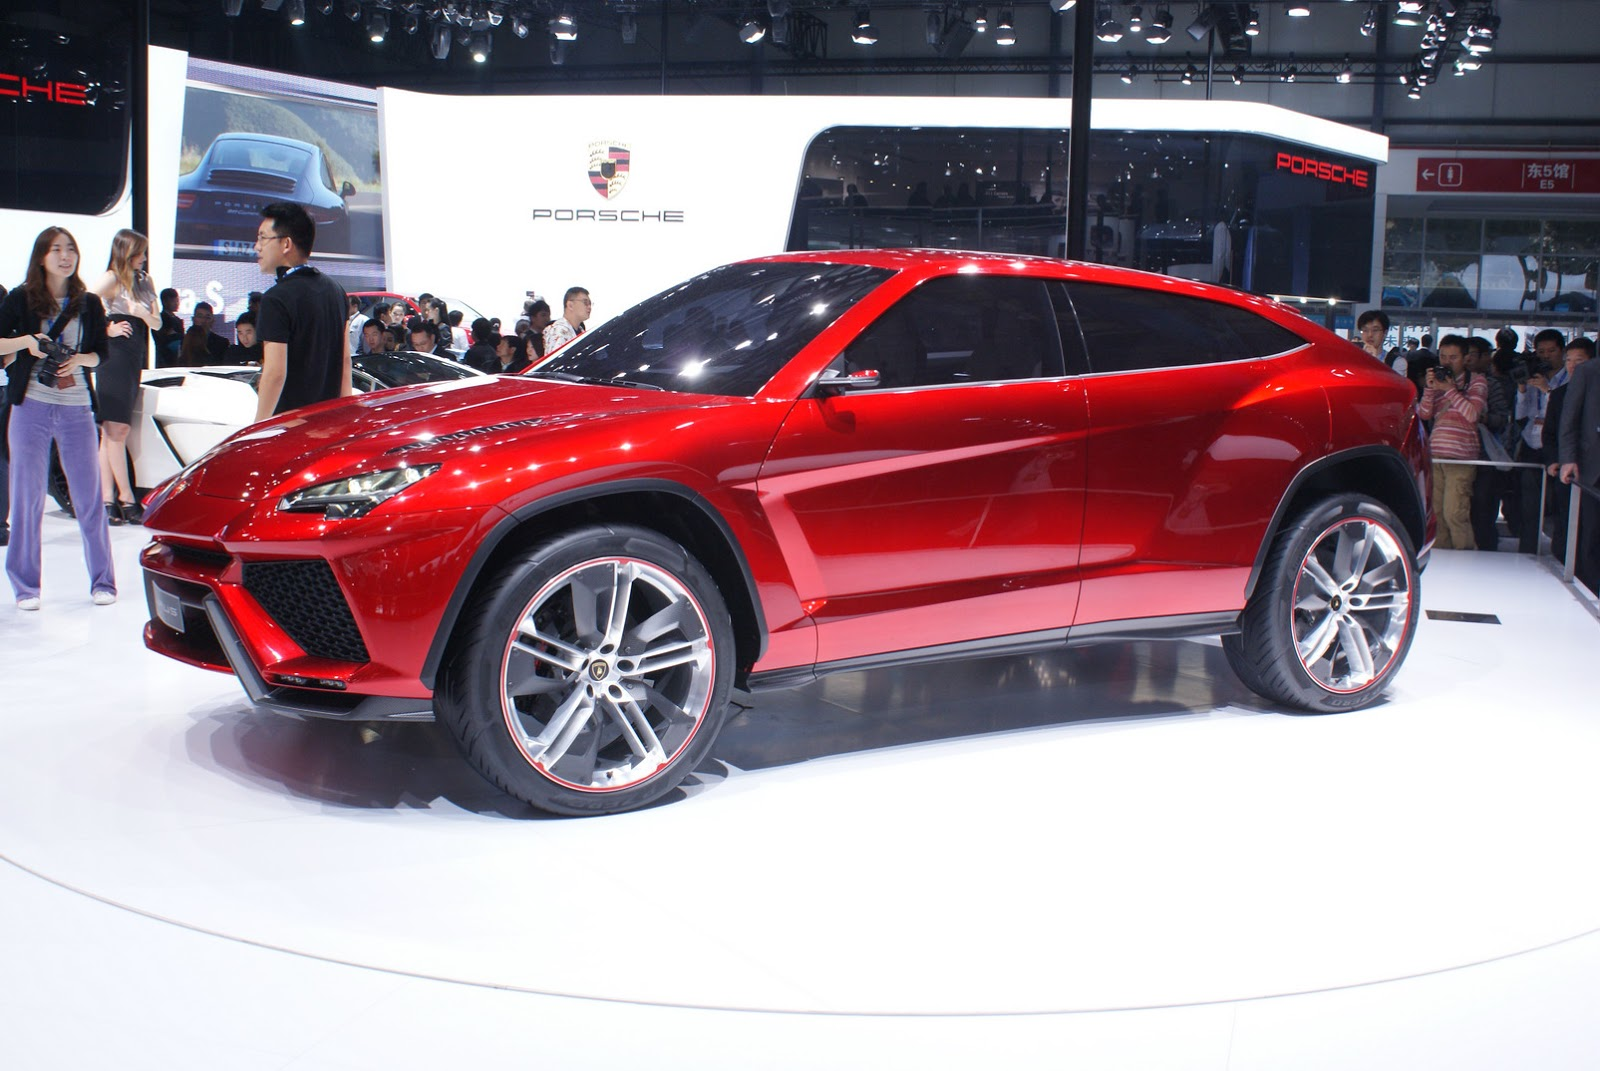 It's Official: Lamborghini's SUV Coming In 2018, Will Be